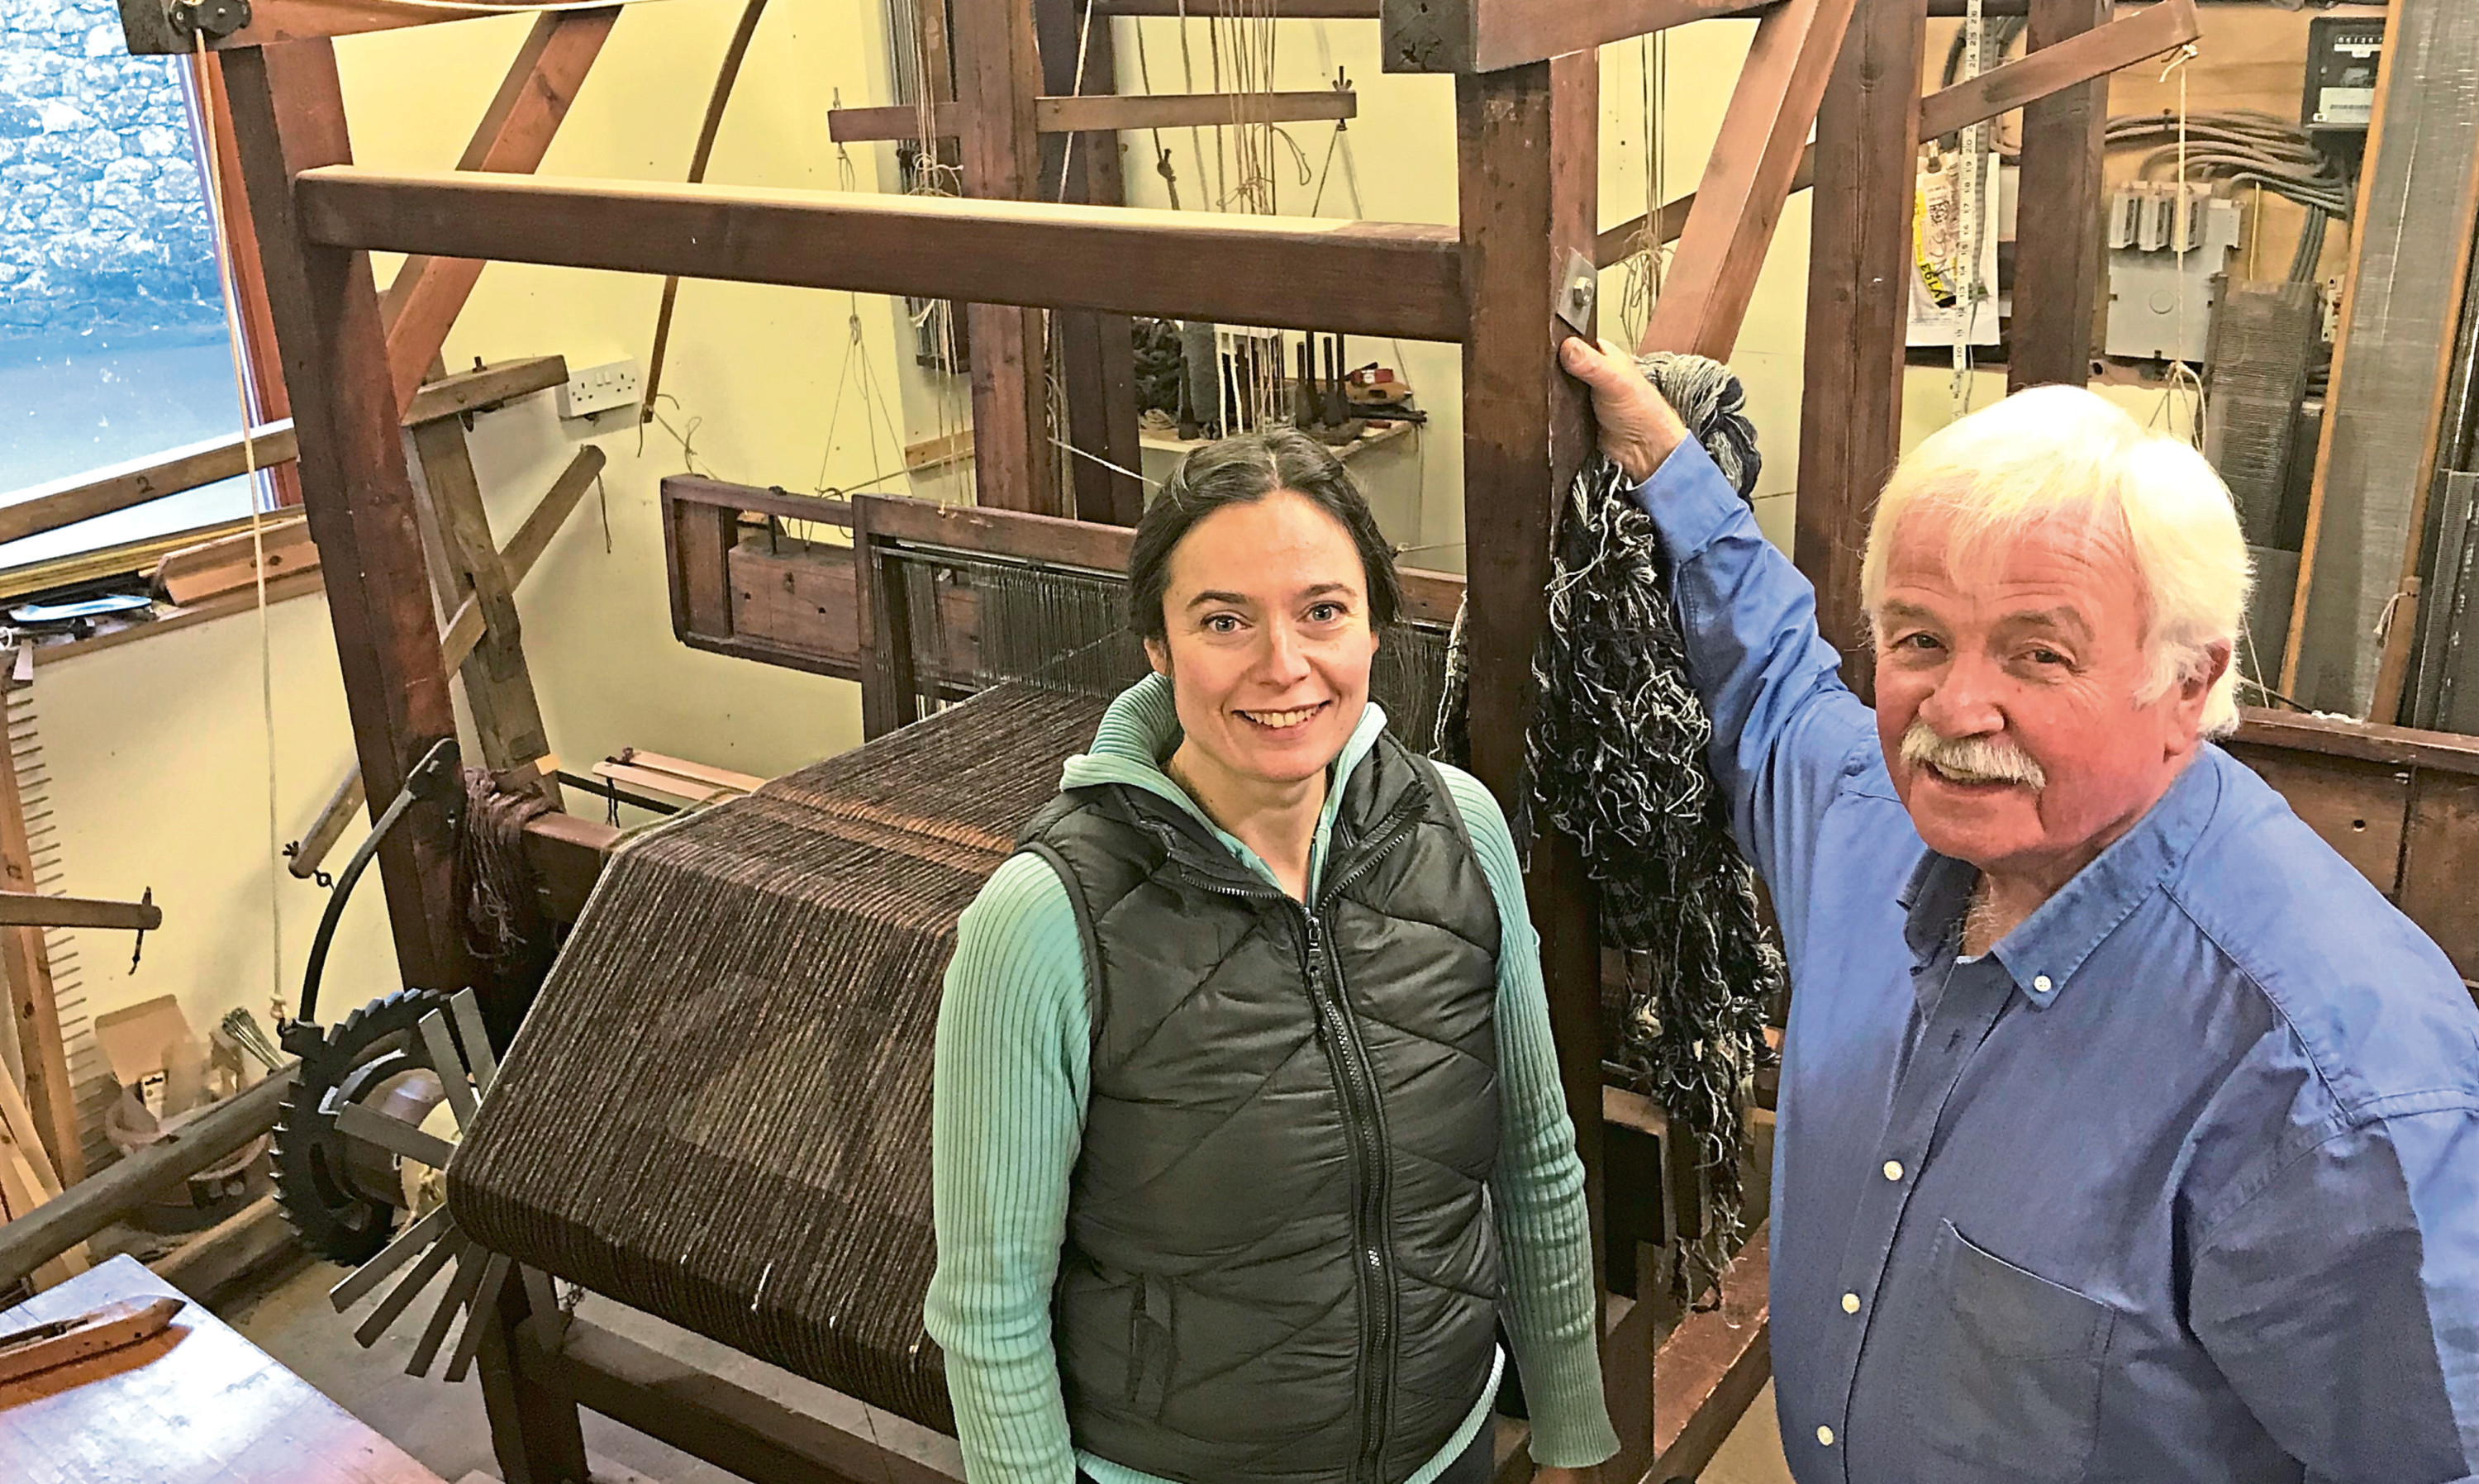 Erika Douglas and Jimmy Hutchison of Newburgh are handloom weavers